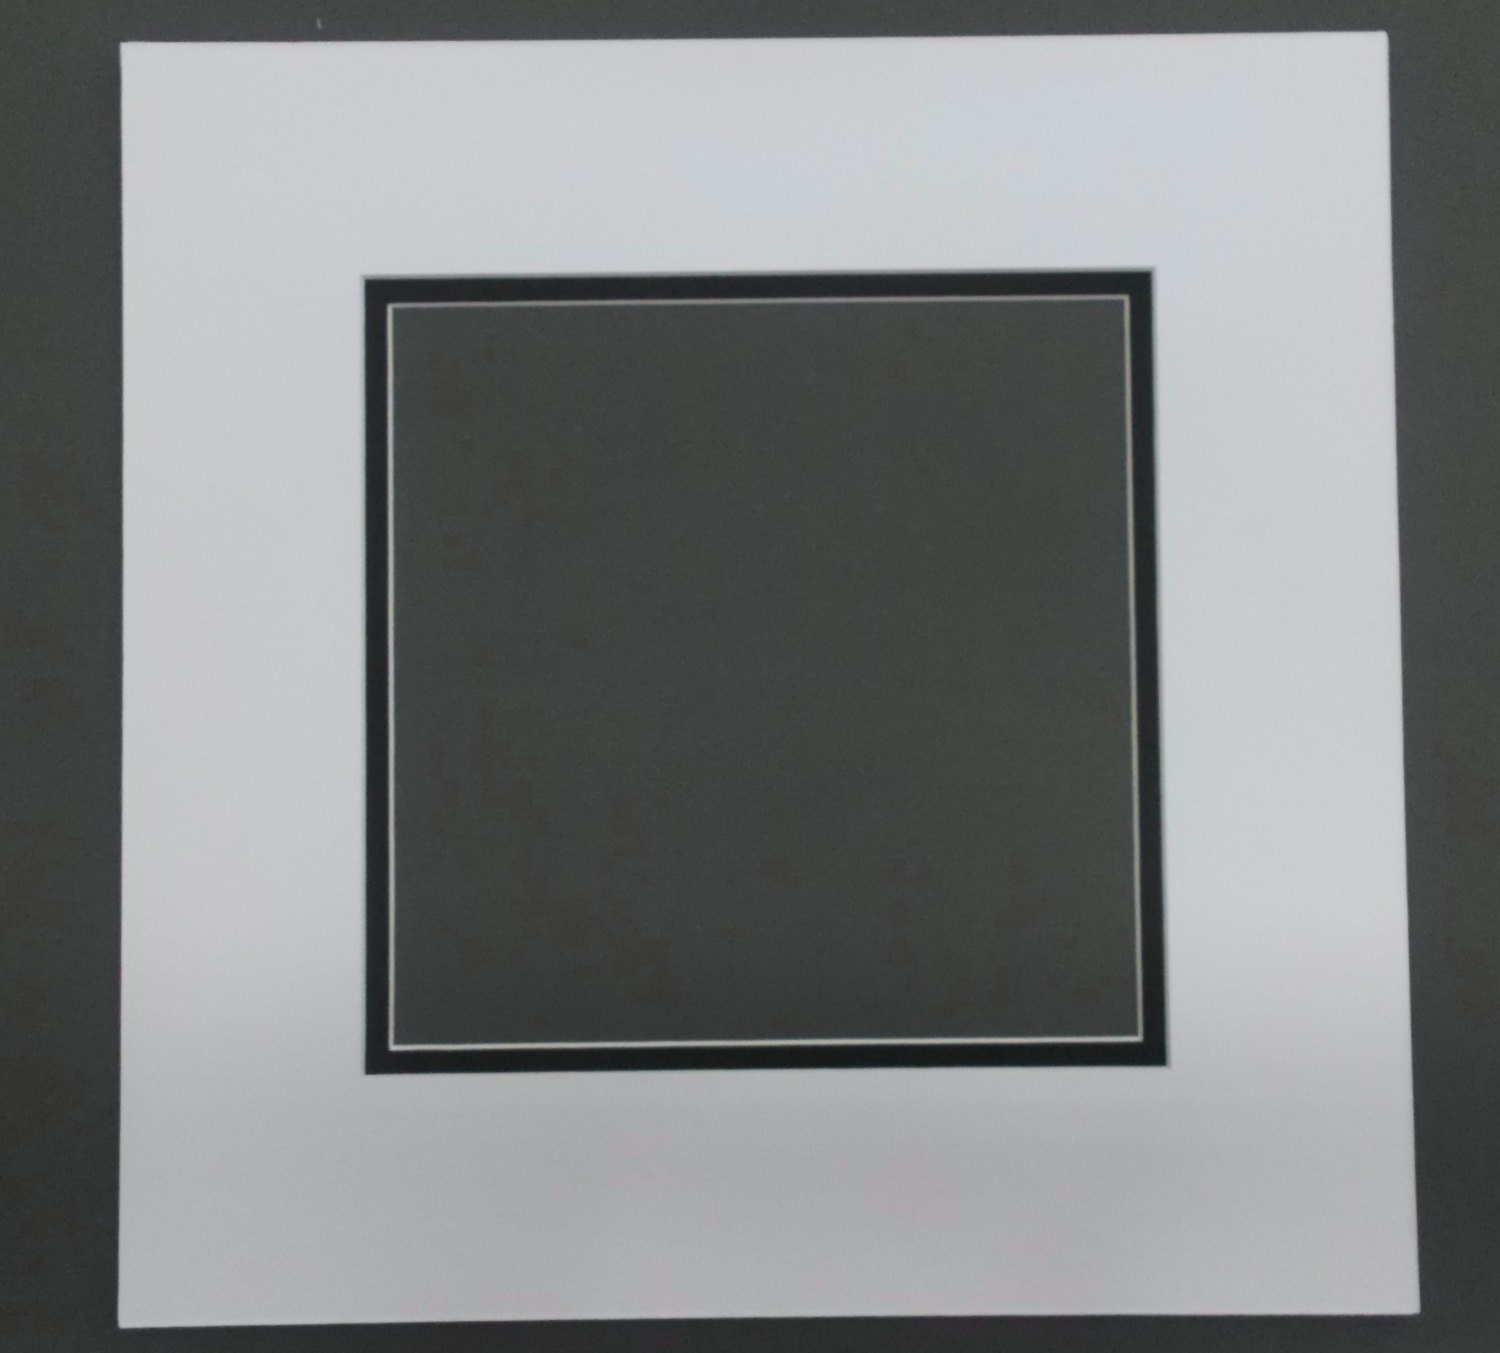 12x12 Square Double Picture Mats For 8x8 Pictures Over 30